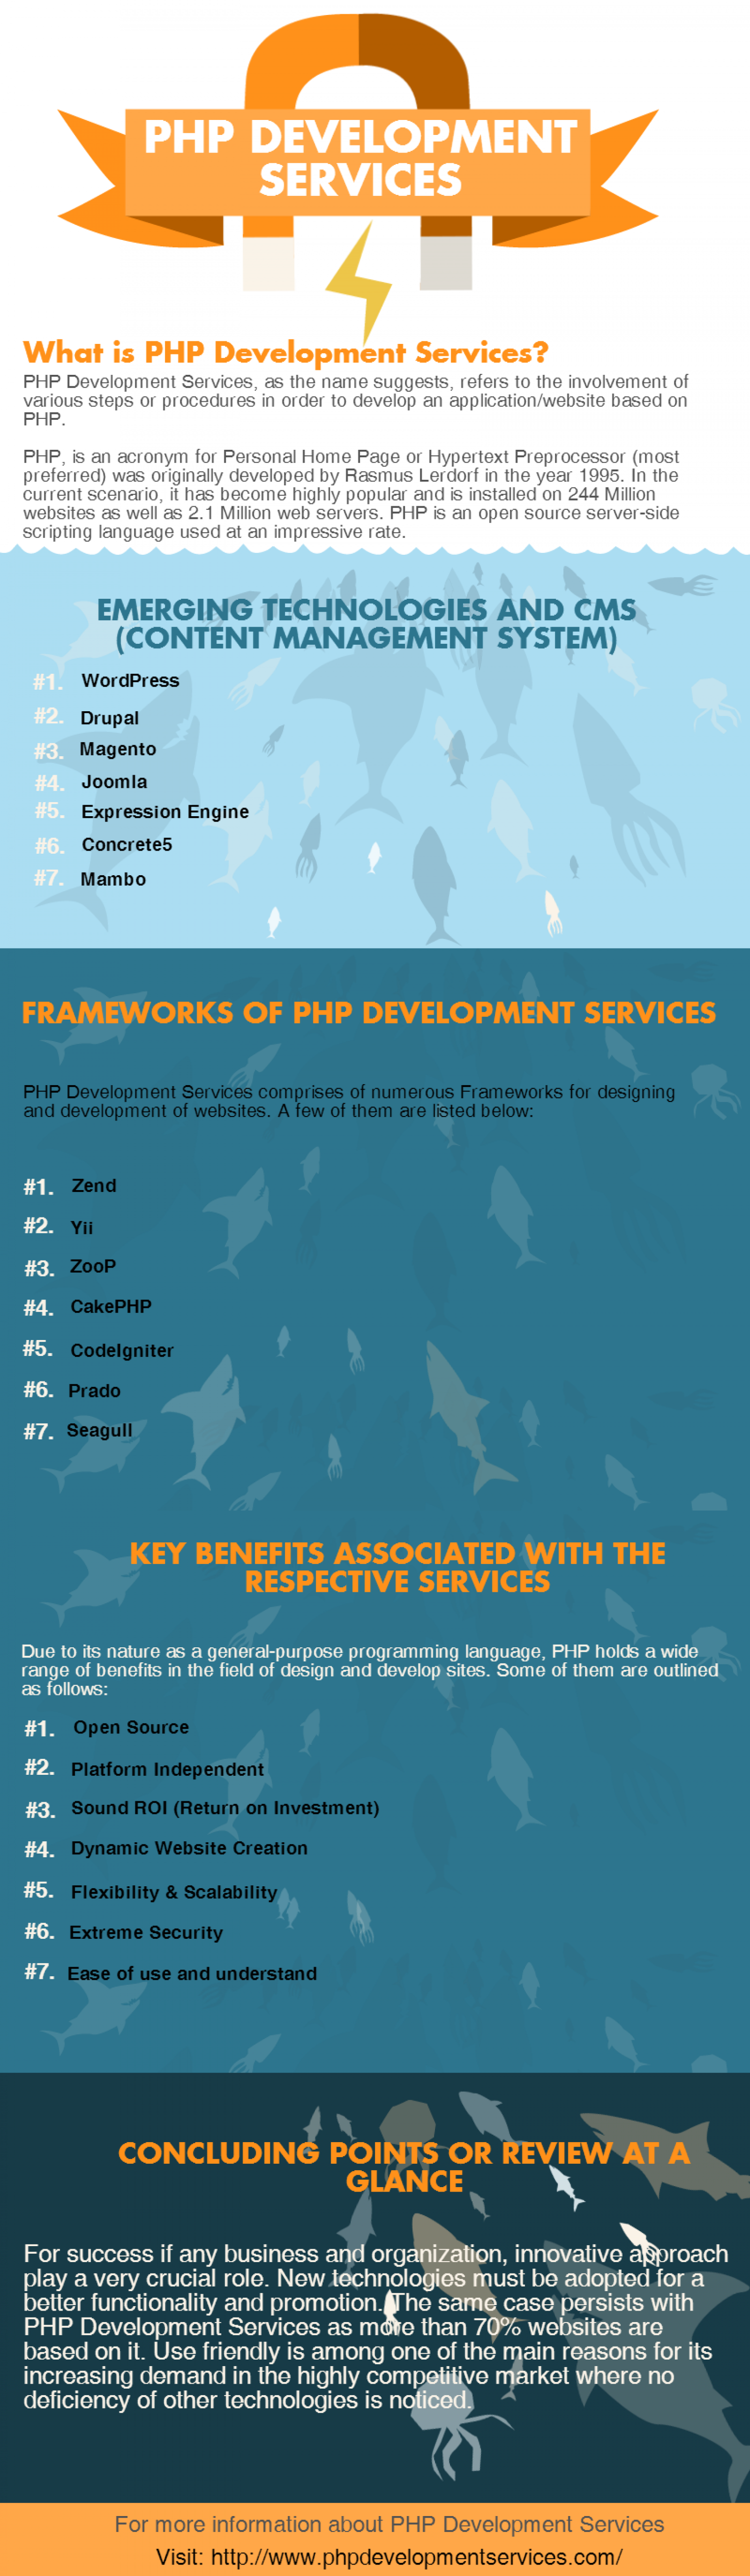 PHP Development Services Infographic